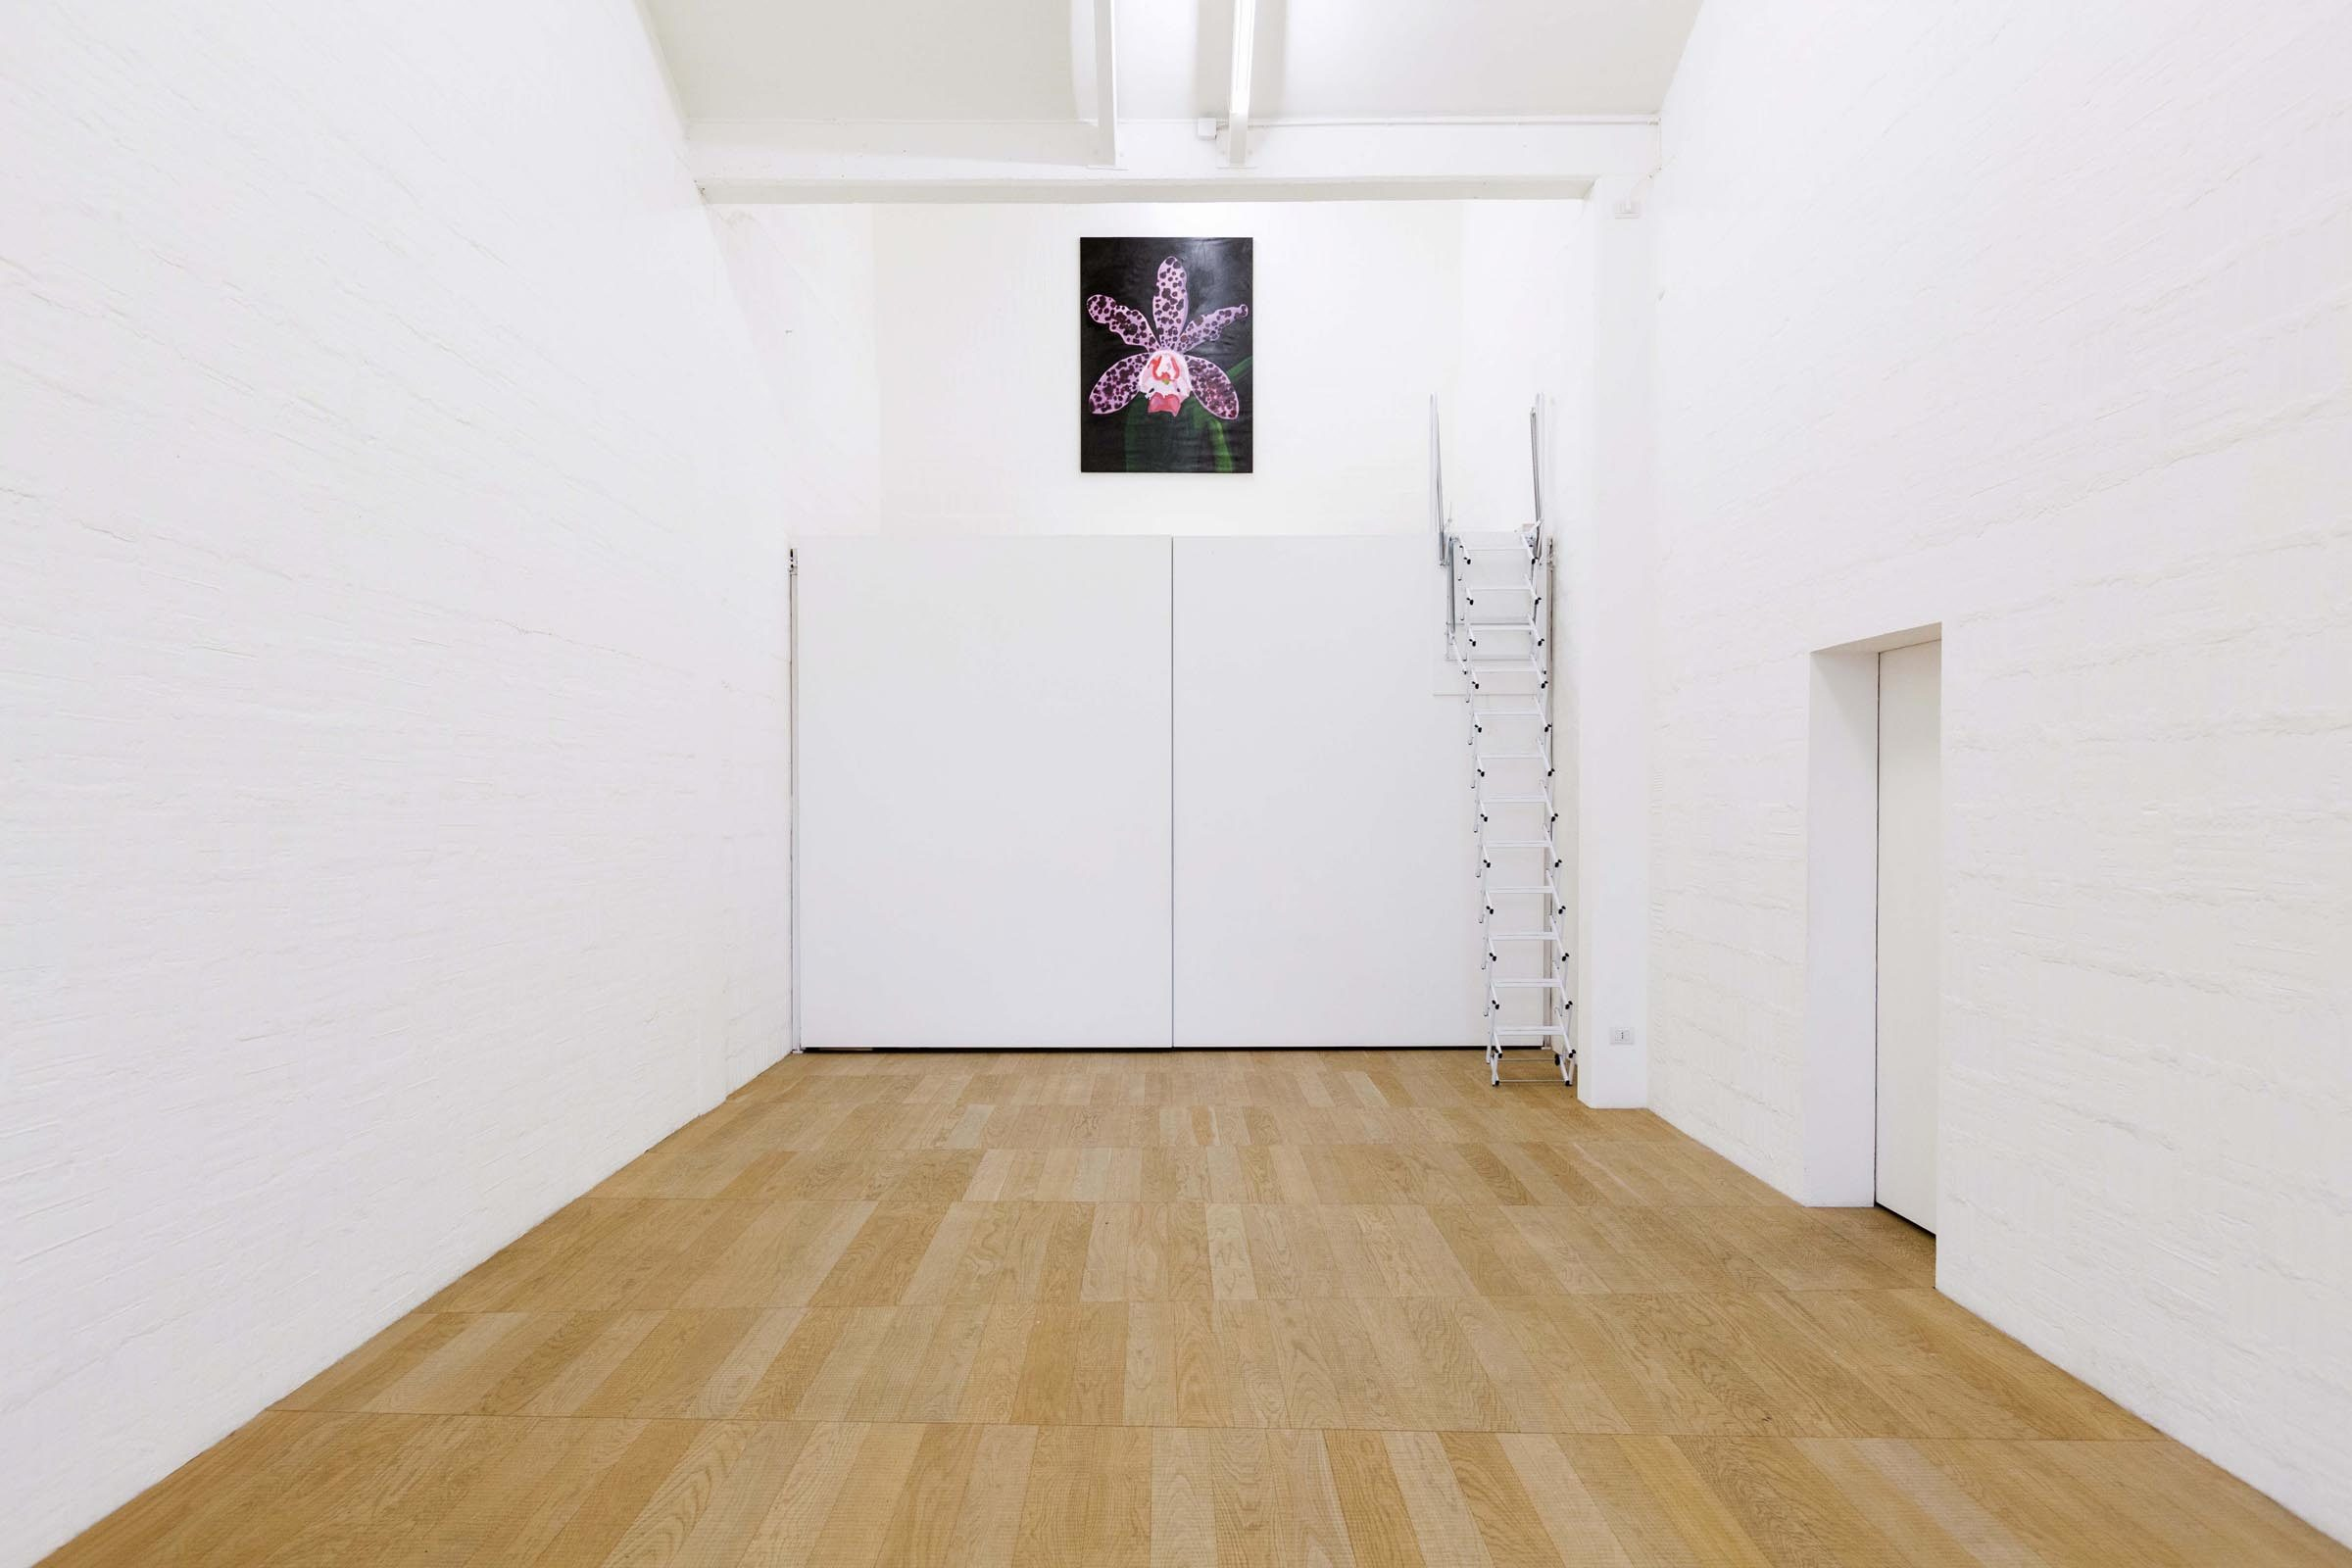 Matteo Attruia, A Flower for Piet, show view, Galleria MDL, Venice, ph. N. Covre